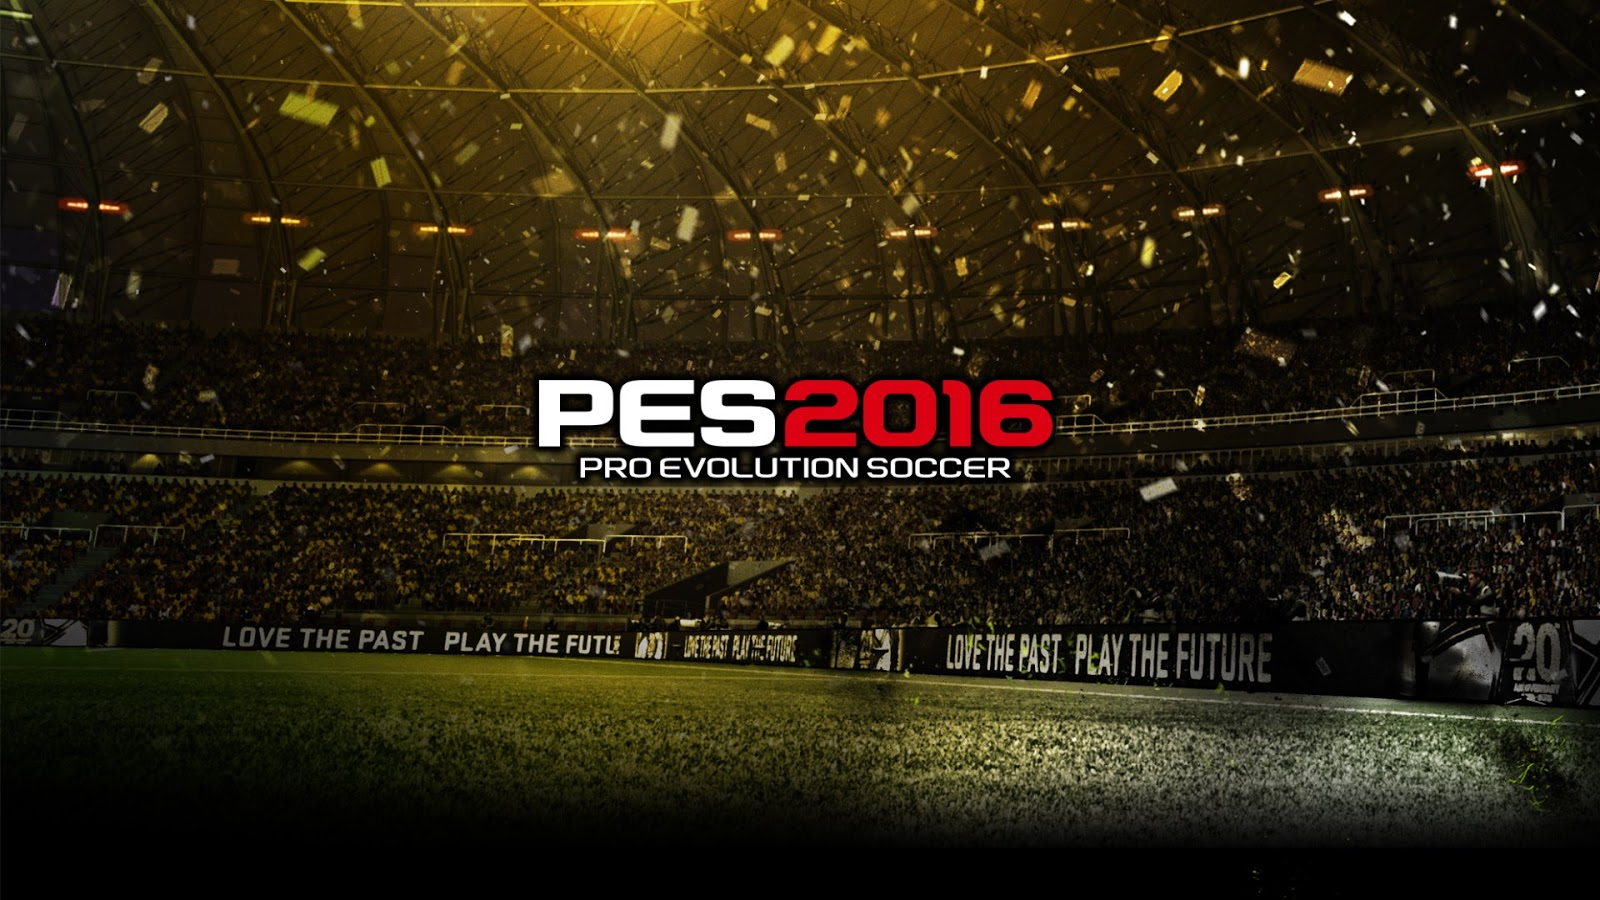 PES 2016 Review - We Know Gamers